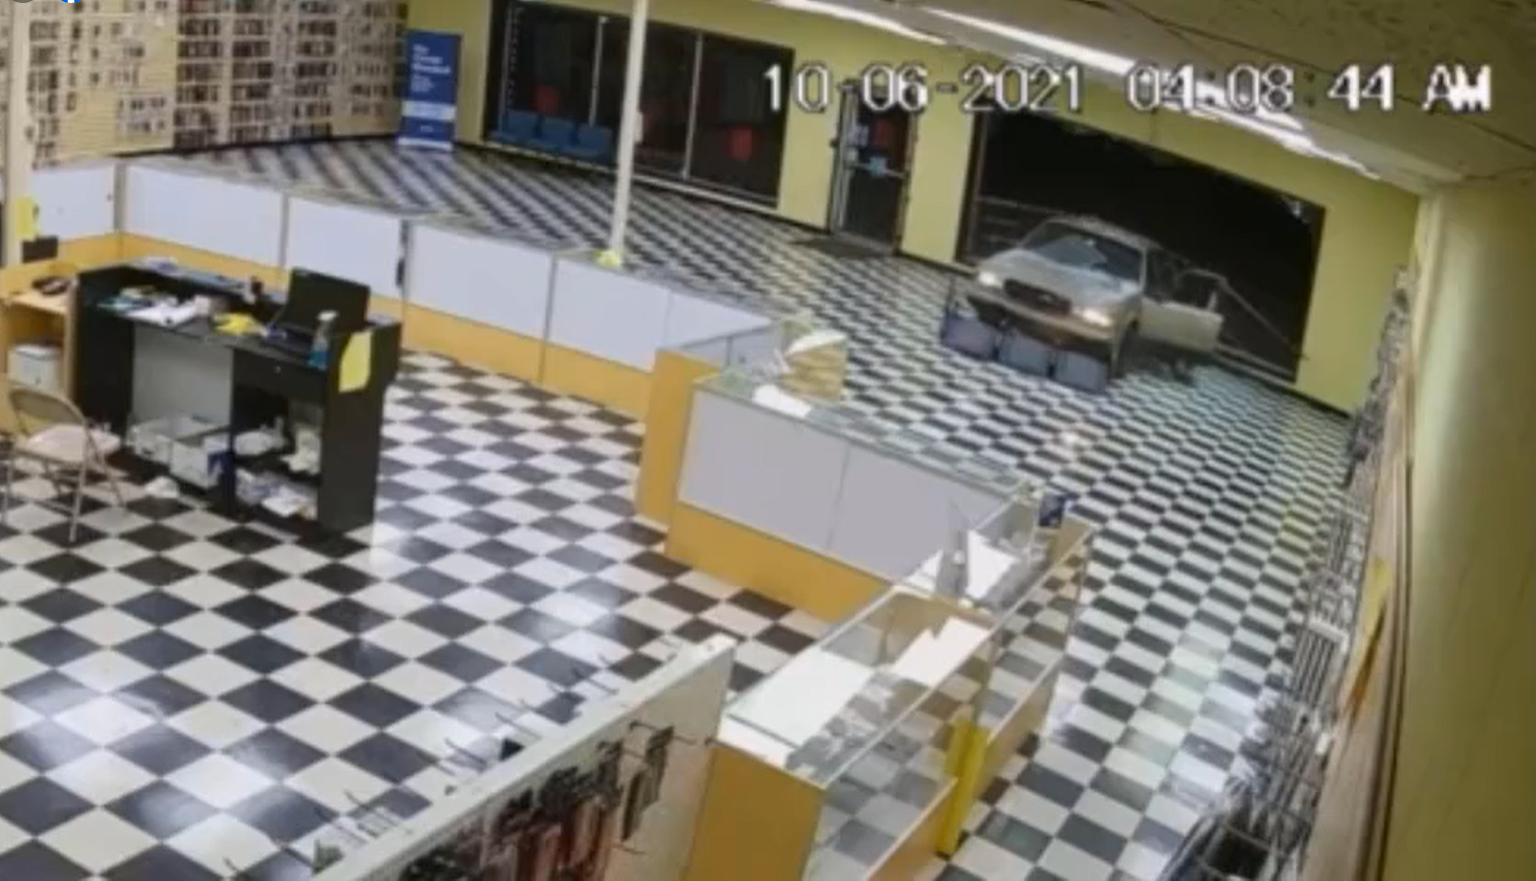 Suspects use Buick to break into store